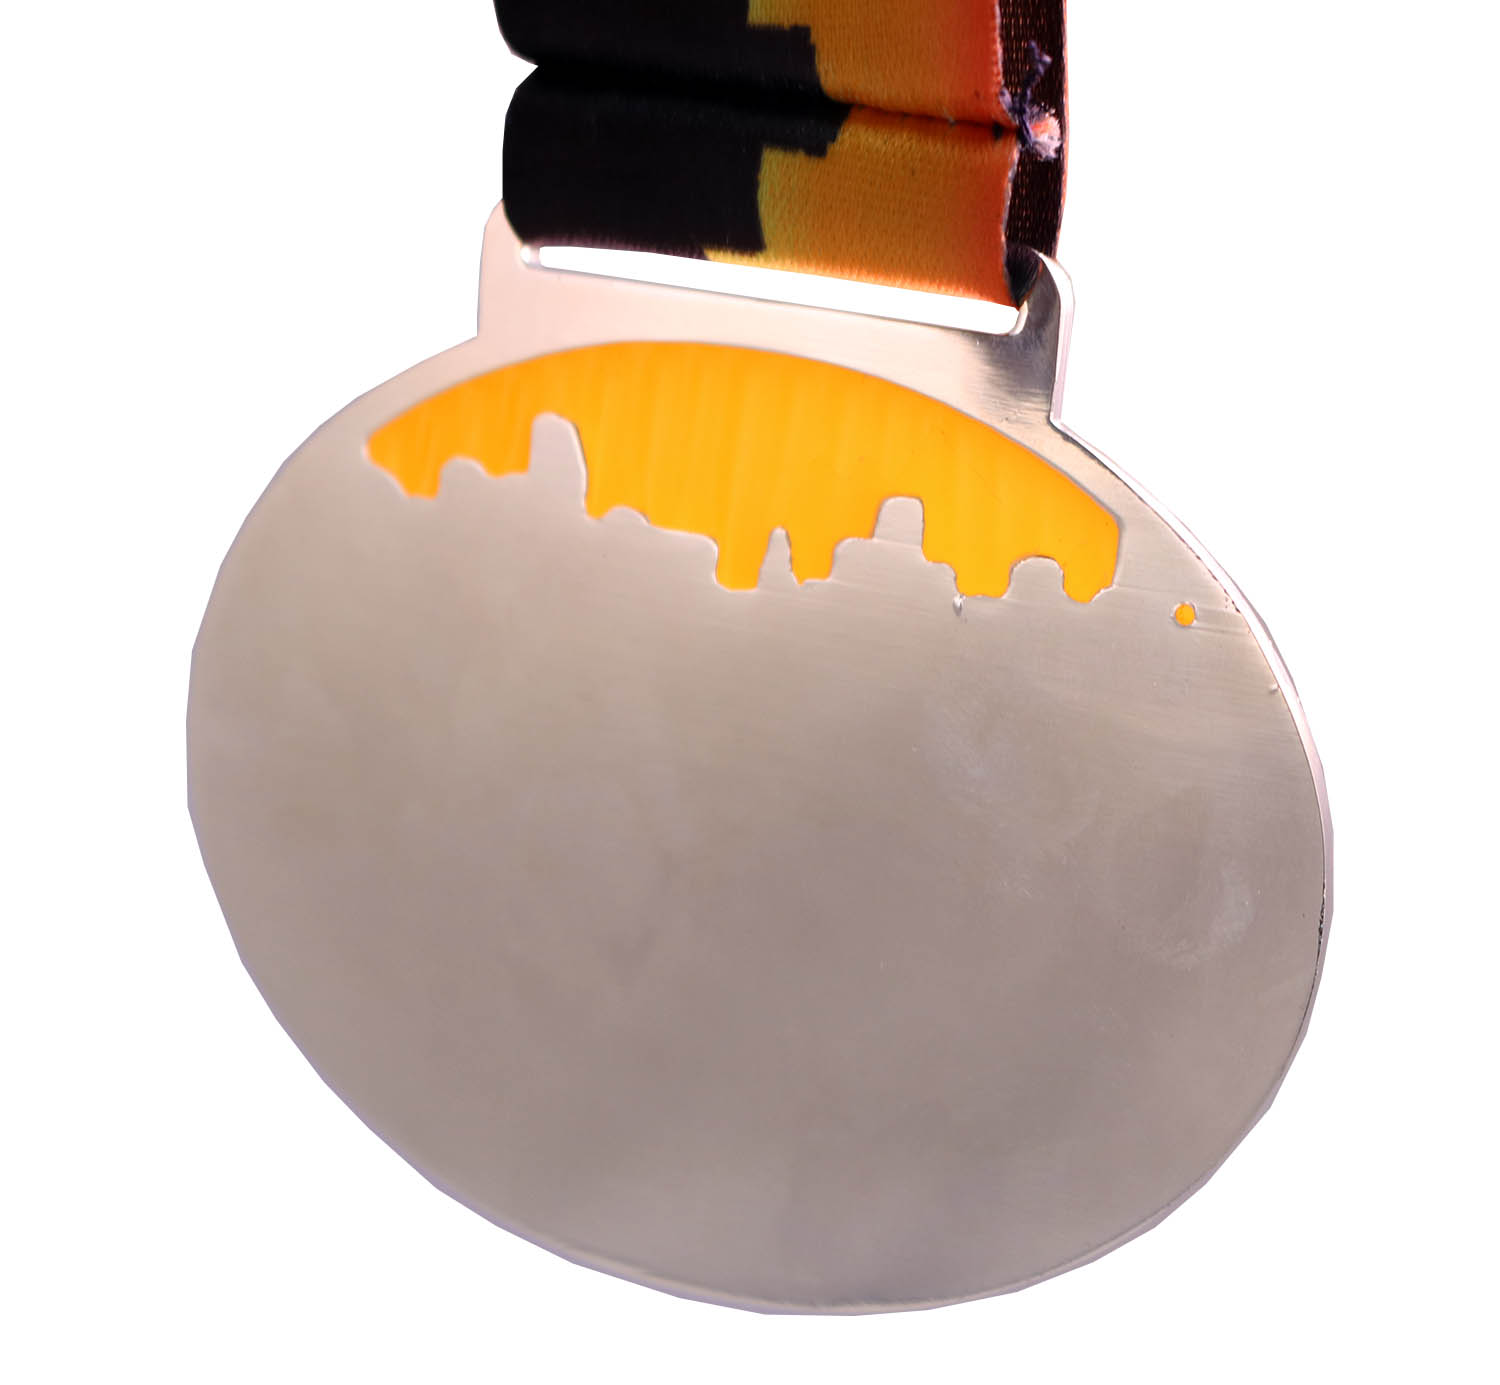 2018 CORPORATE RUN TRANSLUCENT MEDAL BACK